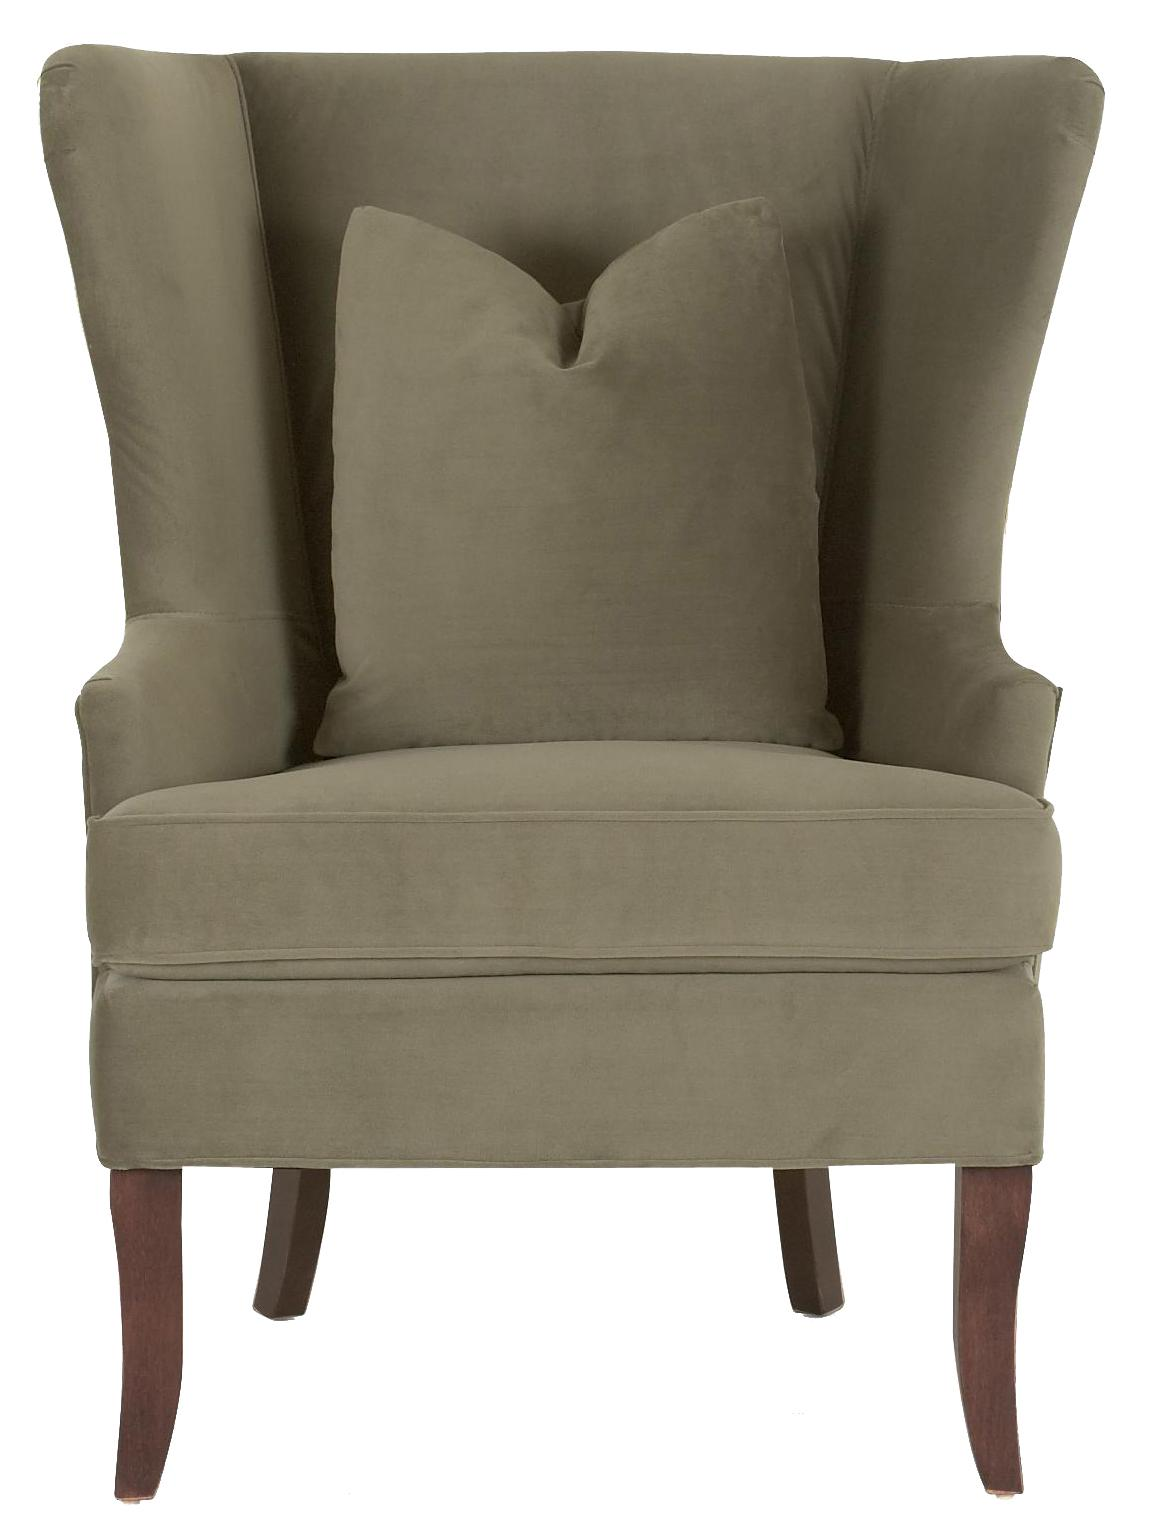 Chairs and Accents Serenity Chair with Down Blend Cushions by Klaussner at Johnny Janosik